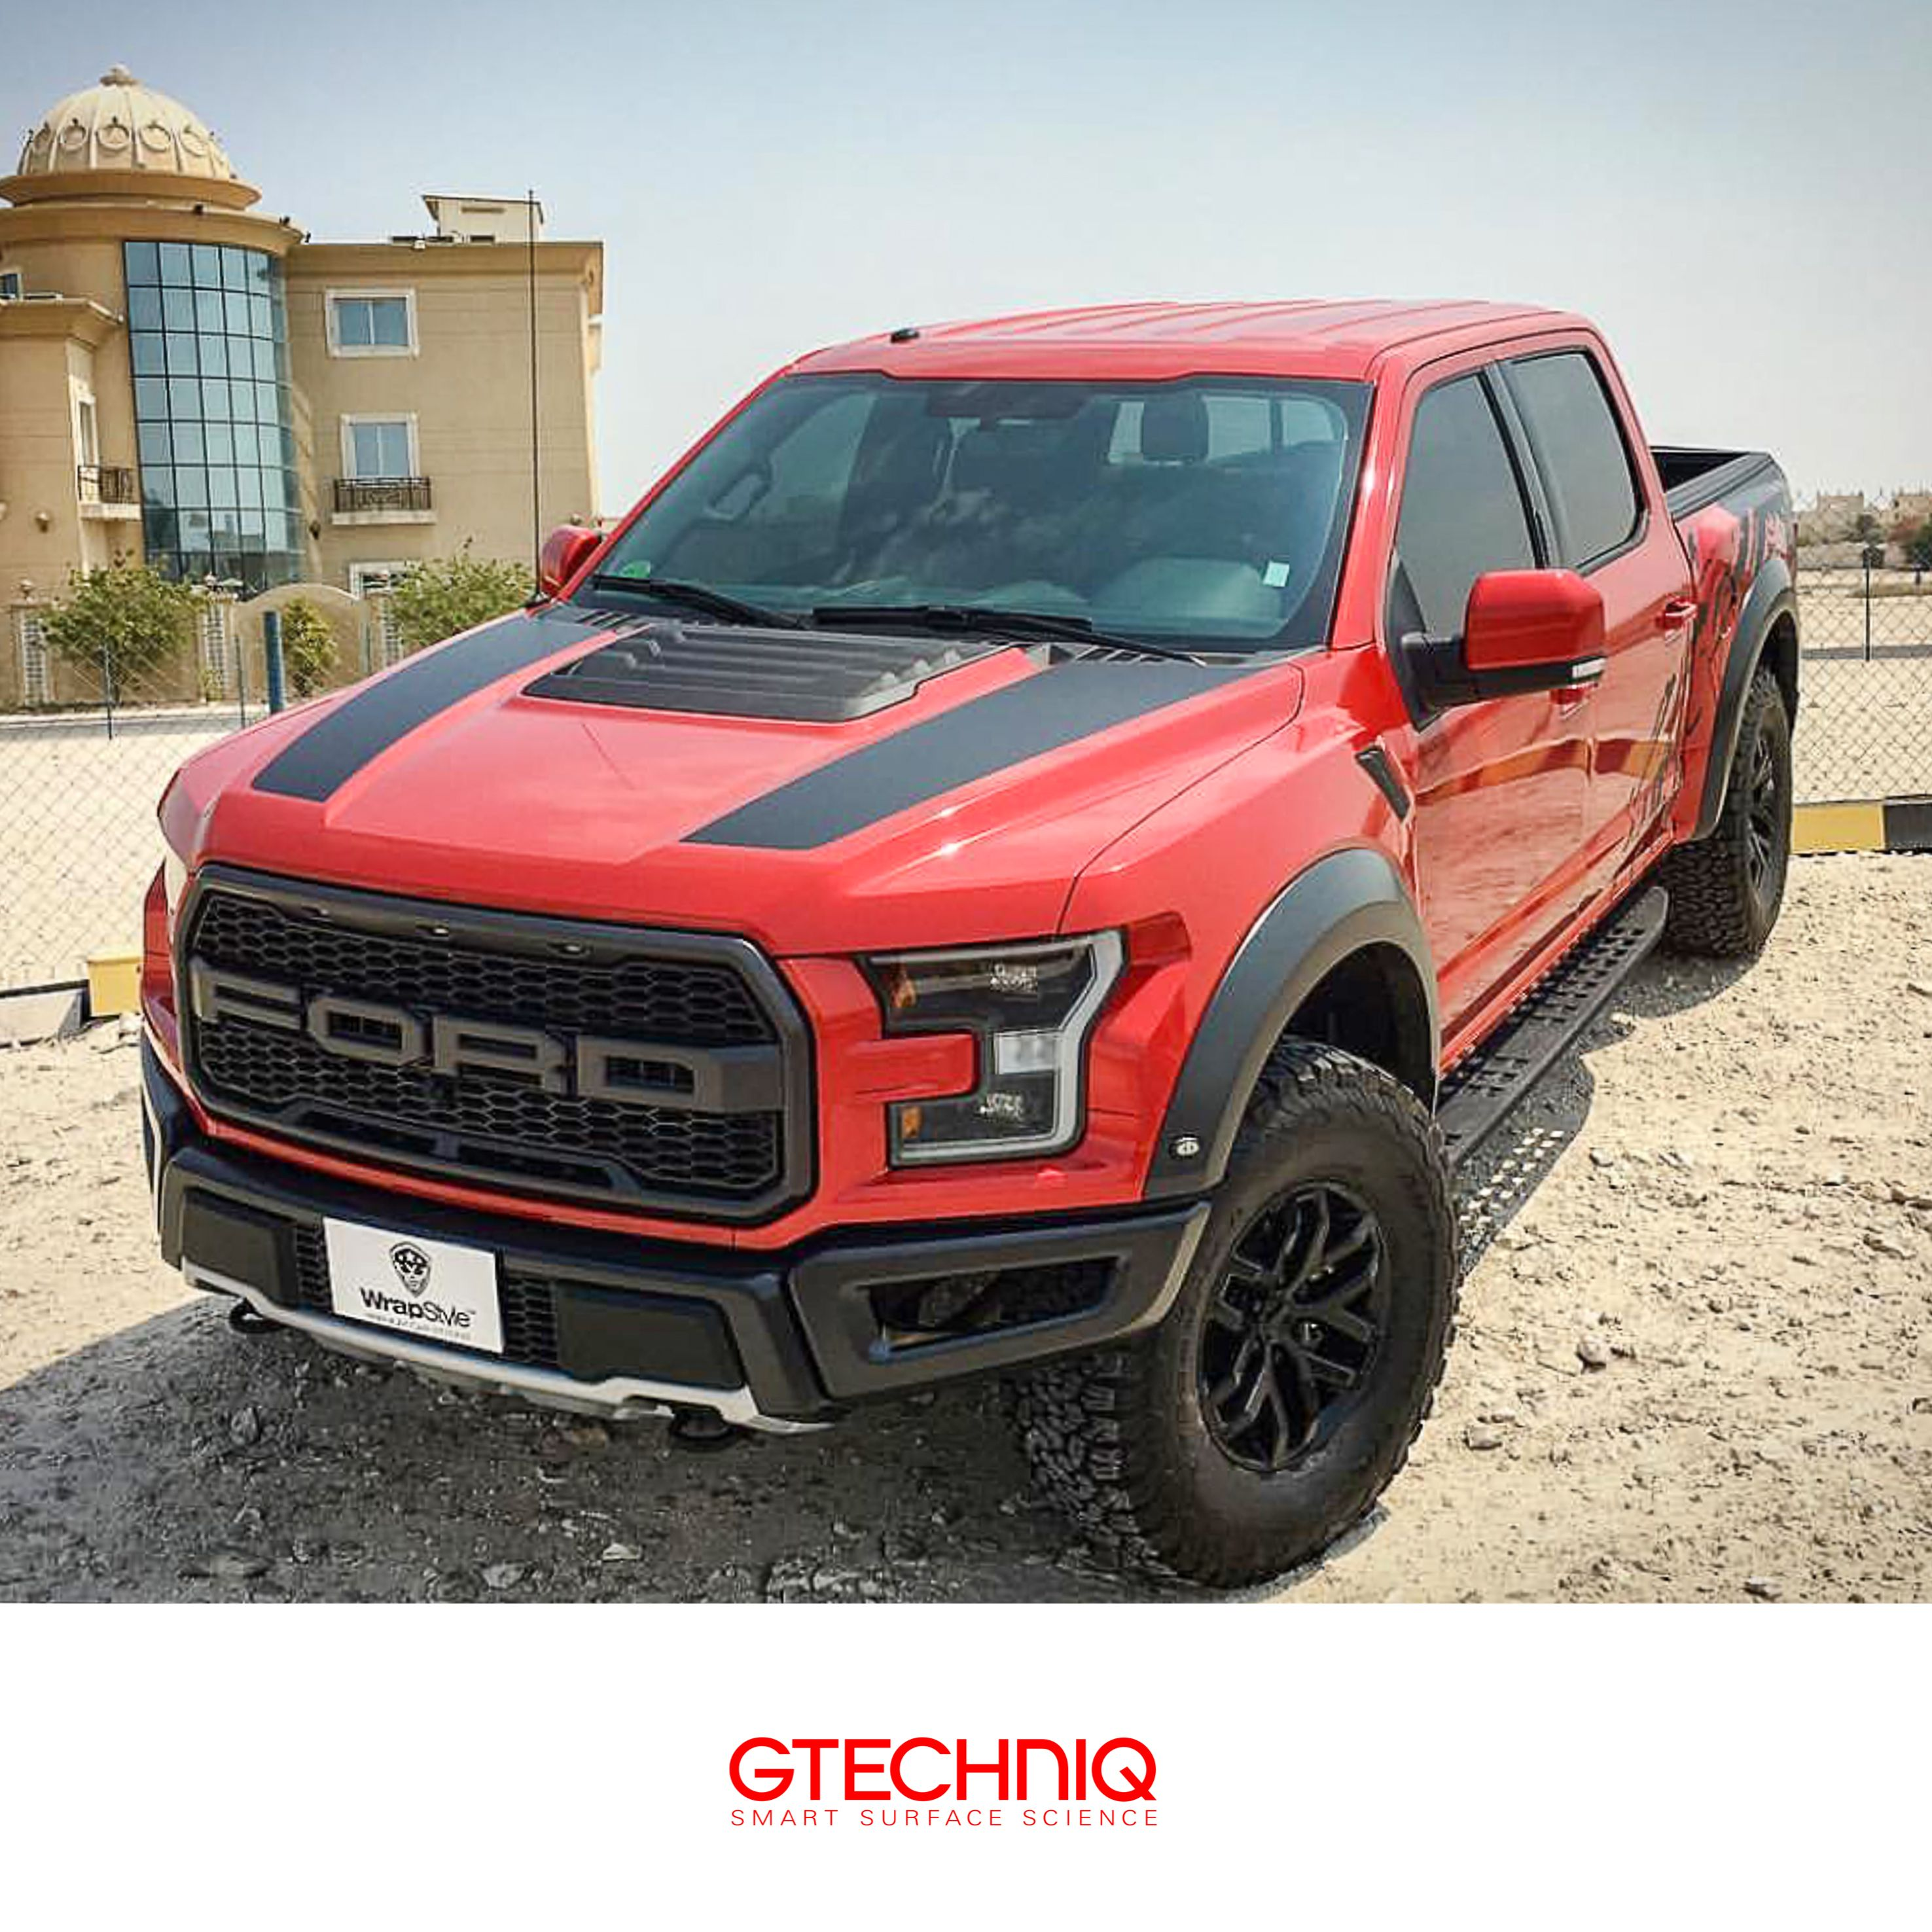 Ford F 150 Raptor Wrapped In Red Dragon Fire And Then Protected By Gtechniq And Our Accredited Detailers Gtechniqqata Ford Trucks Ford Truck Ford Models